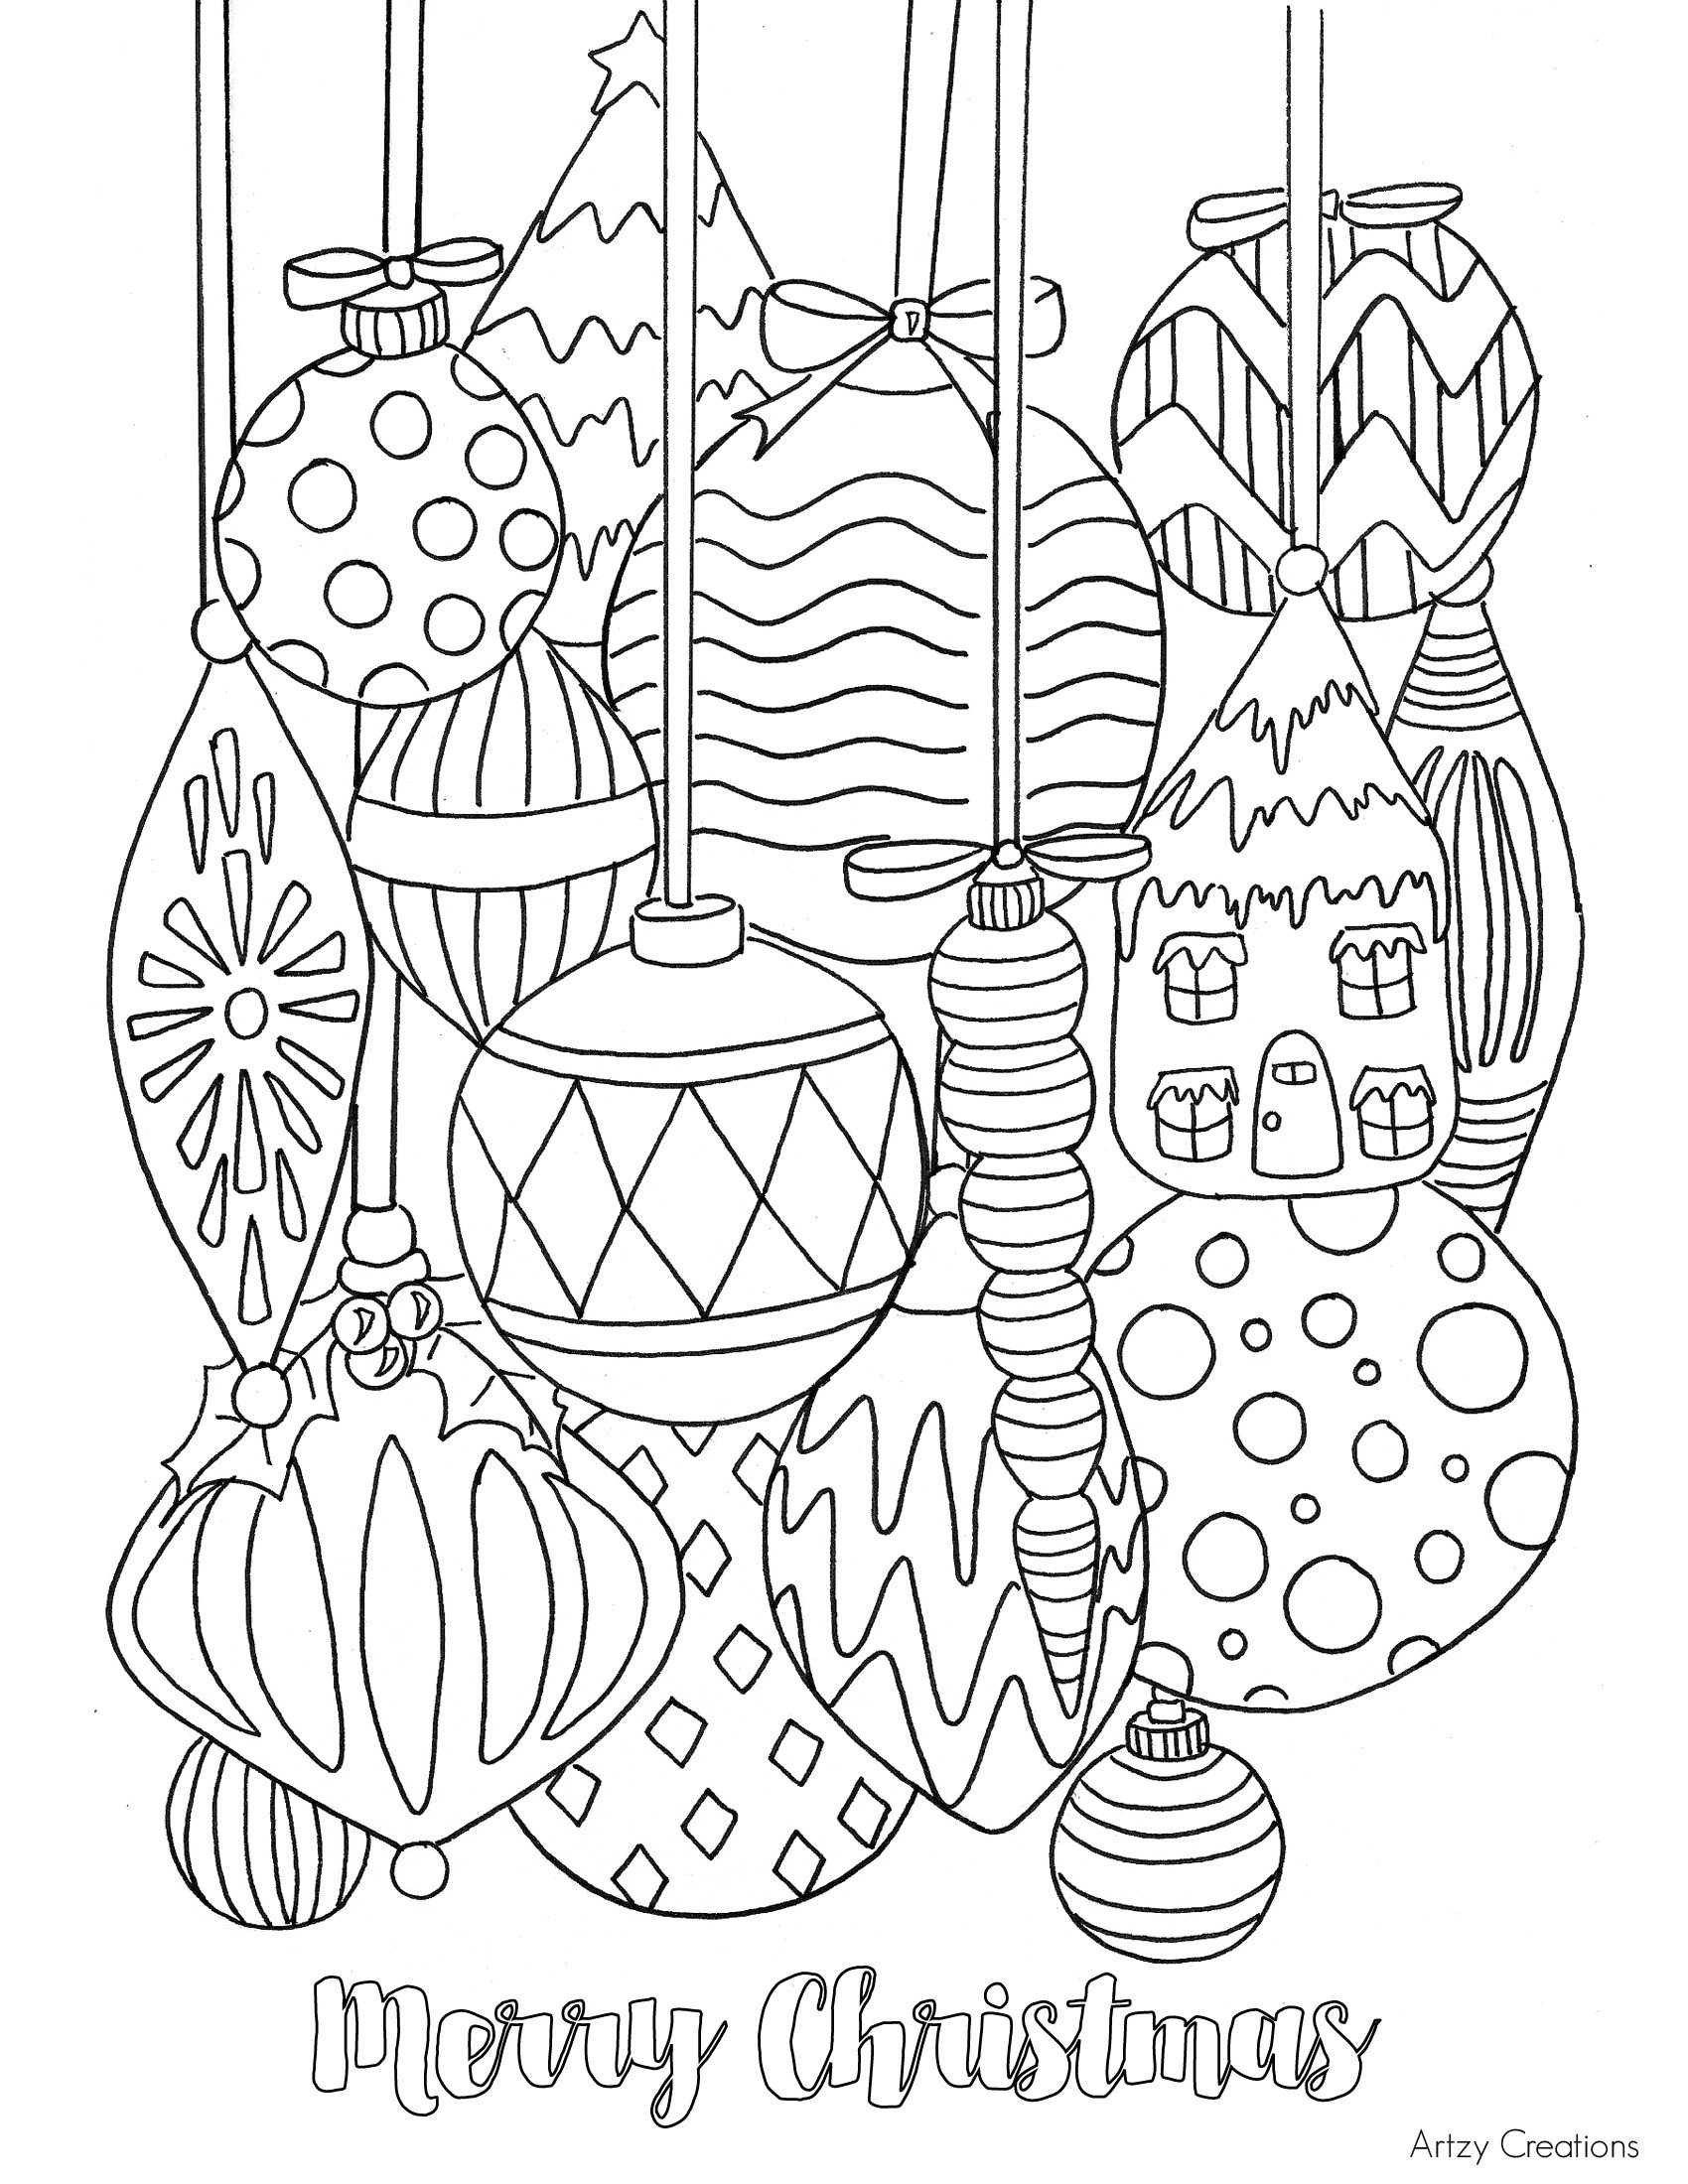 Christmas Coloring Sheets For Adults With Page Of Manger Scene 2019 Unique